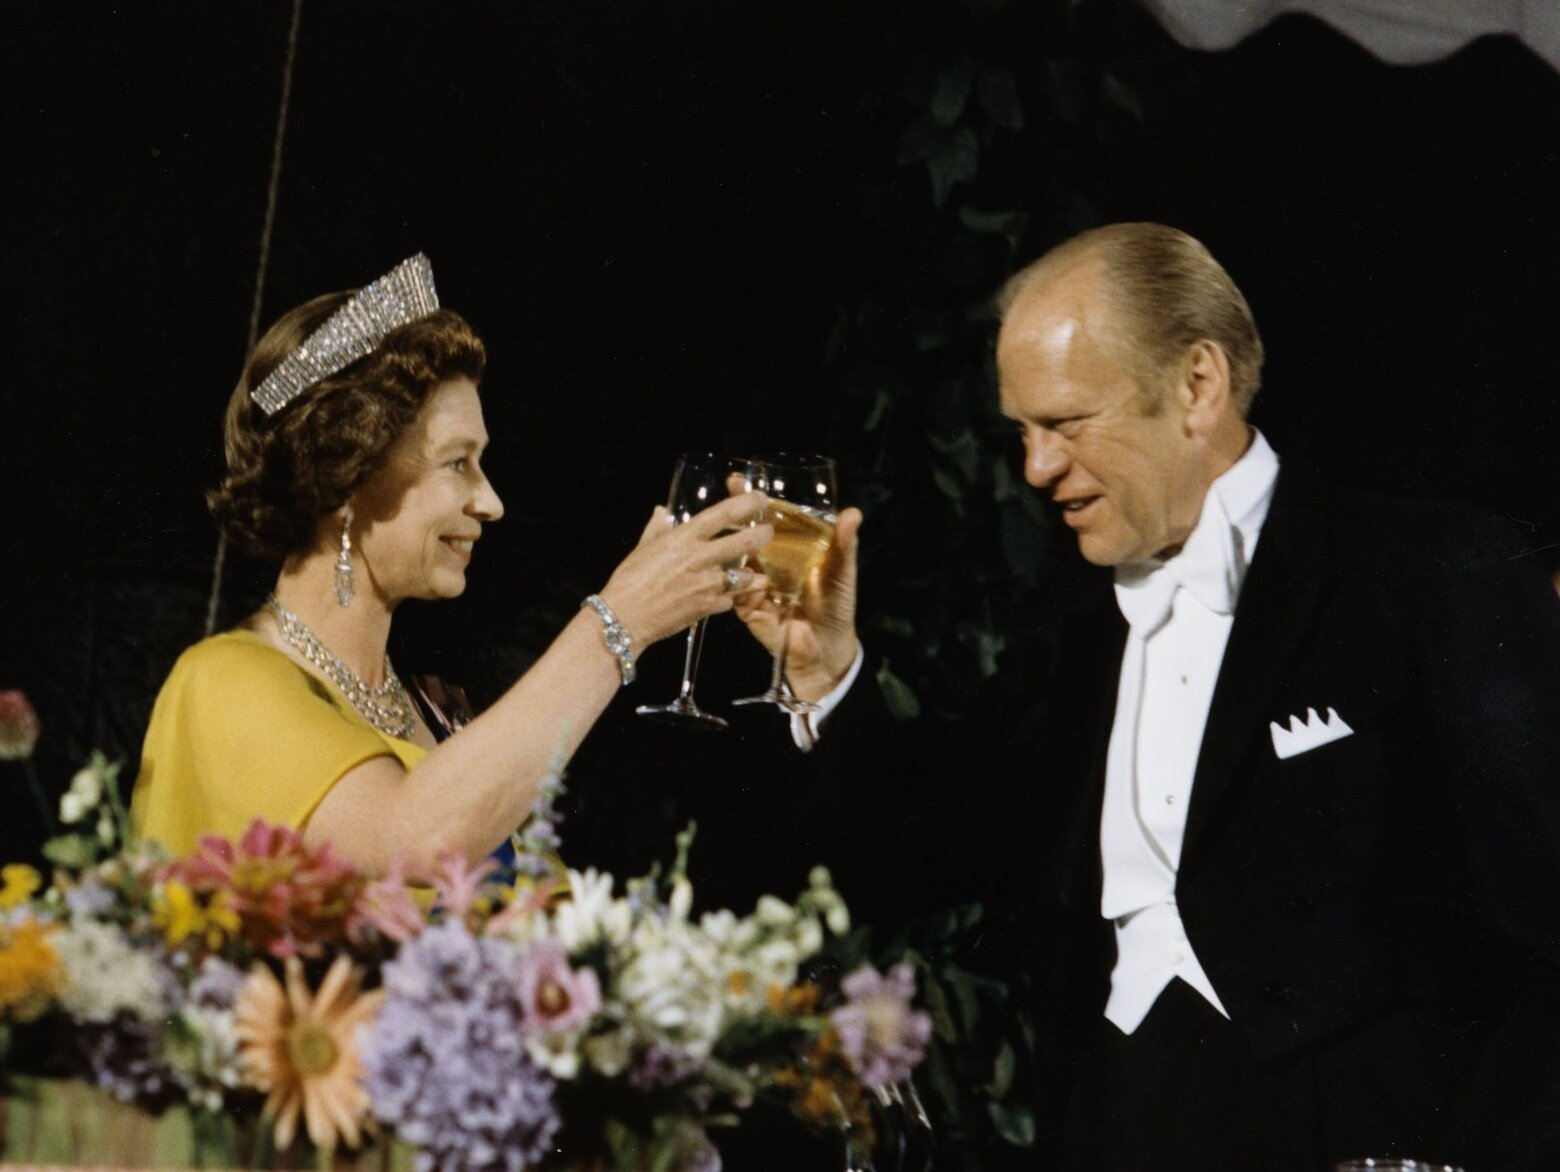 White House or Wine House? The United States presidents' favourite wines